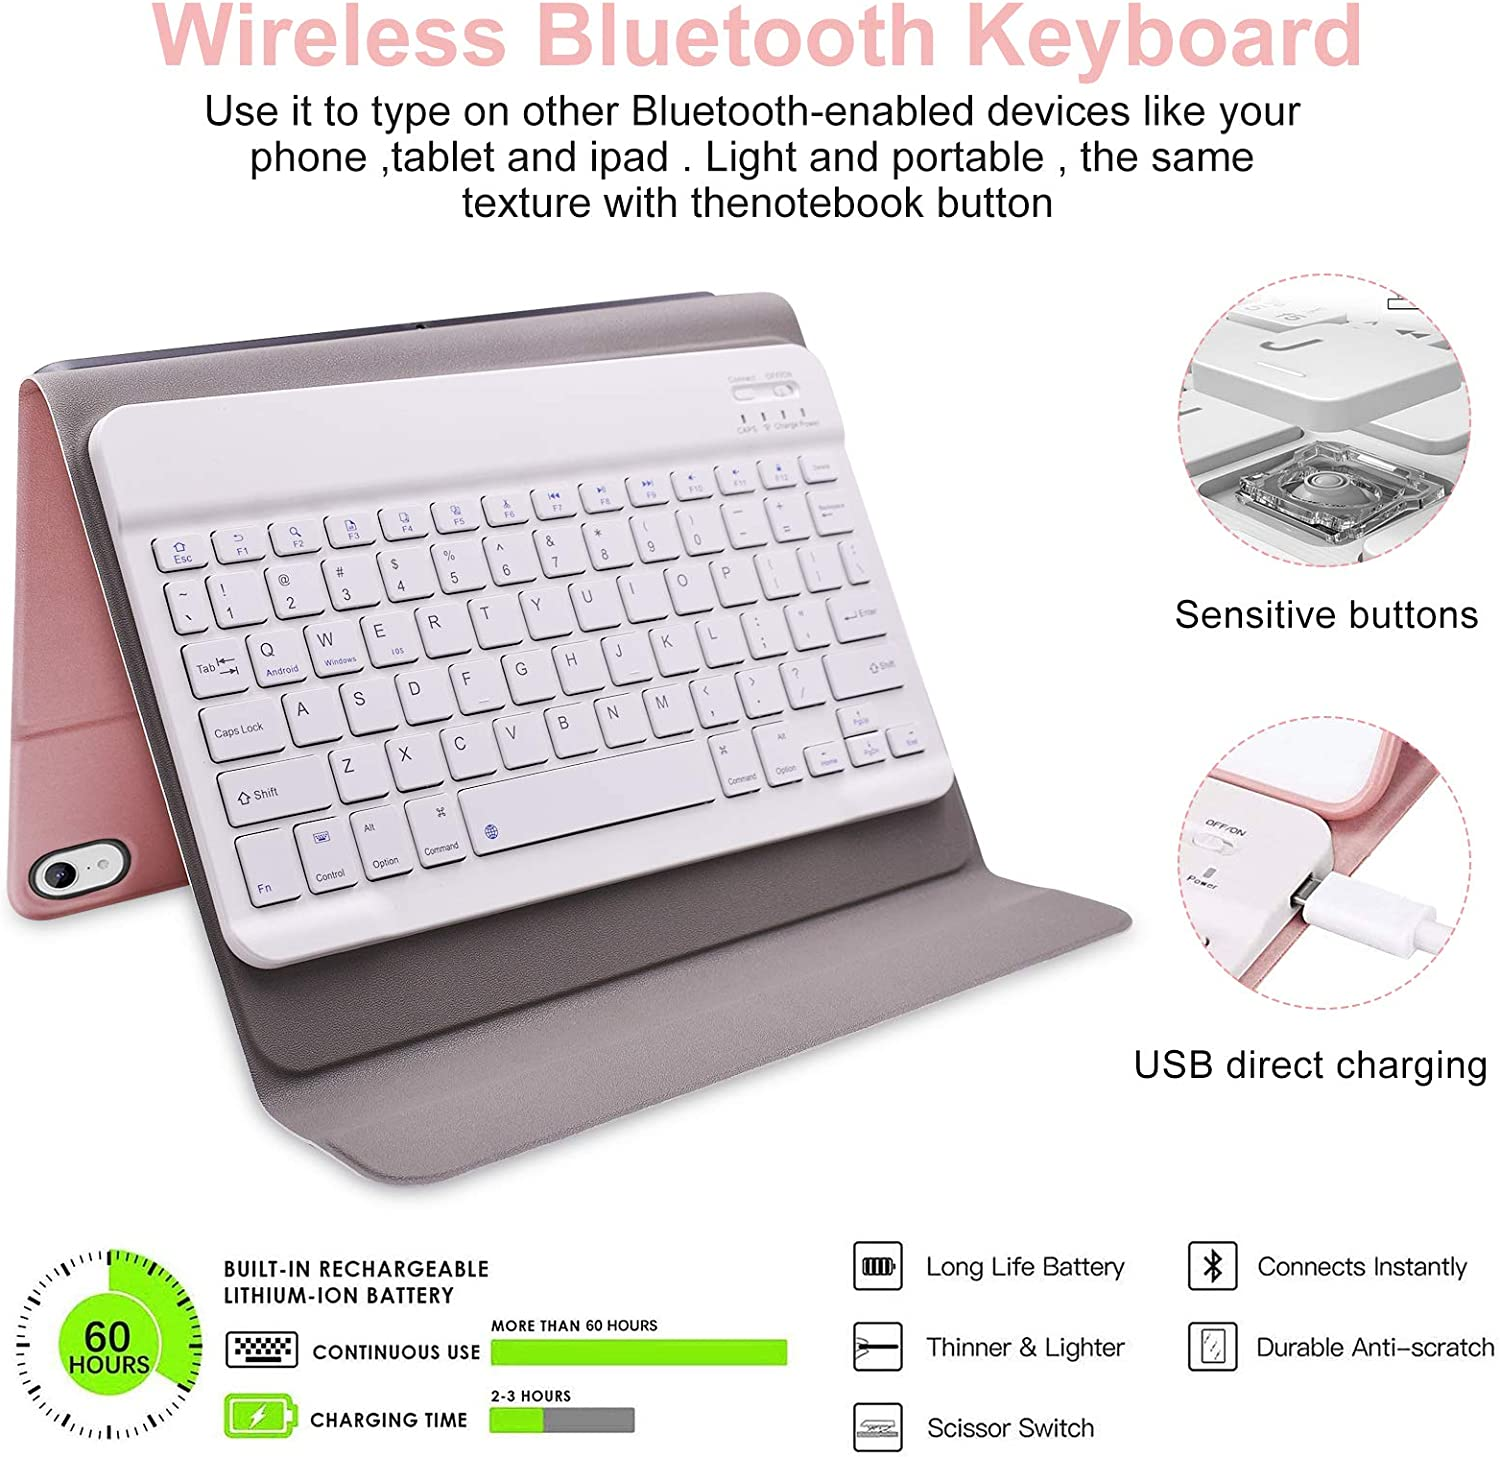 Rosegold Keyboard Case for iPad Air 4th Gen with Magnetically Detachable Wireless Keyboard for iPad Air 4th Generation 2020 10.9//iPad Pro 11 2018 New iPad Air 4 Keyboard Case 10.9 2020